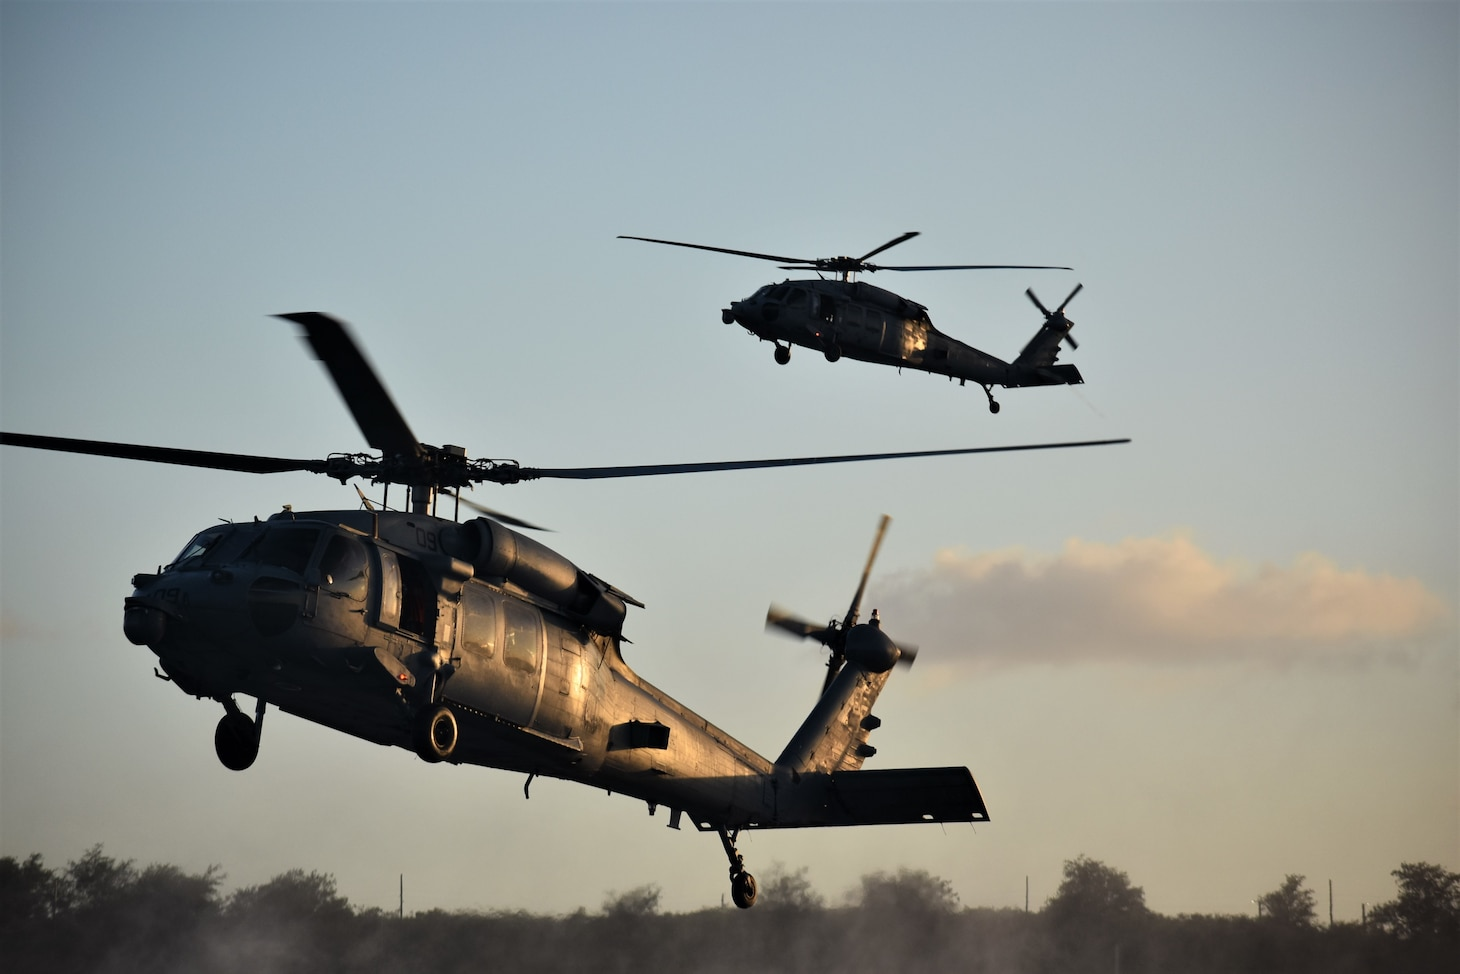 NAVAL BASE GUAM (April 16, 2019) Two MH-60S Seahawk helicopters, attached to Helicopter Sea Combat Squadron (HSC) 25, transport Sailors assigned to Explosive Ordnance Disposal Mobile Unit (EODMU) 5, during the fast rope portion of the Naval Helicopter Rope Suspension Technique (HRST) course. EODMU-5 is assigned to Commander, Navy Expeditionary Forces Pacific, the primary expeditionary task force responsible for the planning and execution of coastal riverine operations, explosive ordnance disposal, diving engineering and construction, and underwater construction in the U.S. 7th Fleet area of operations.